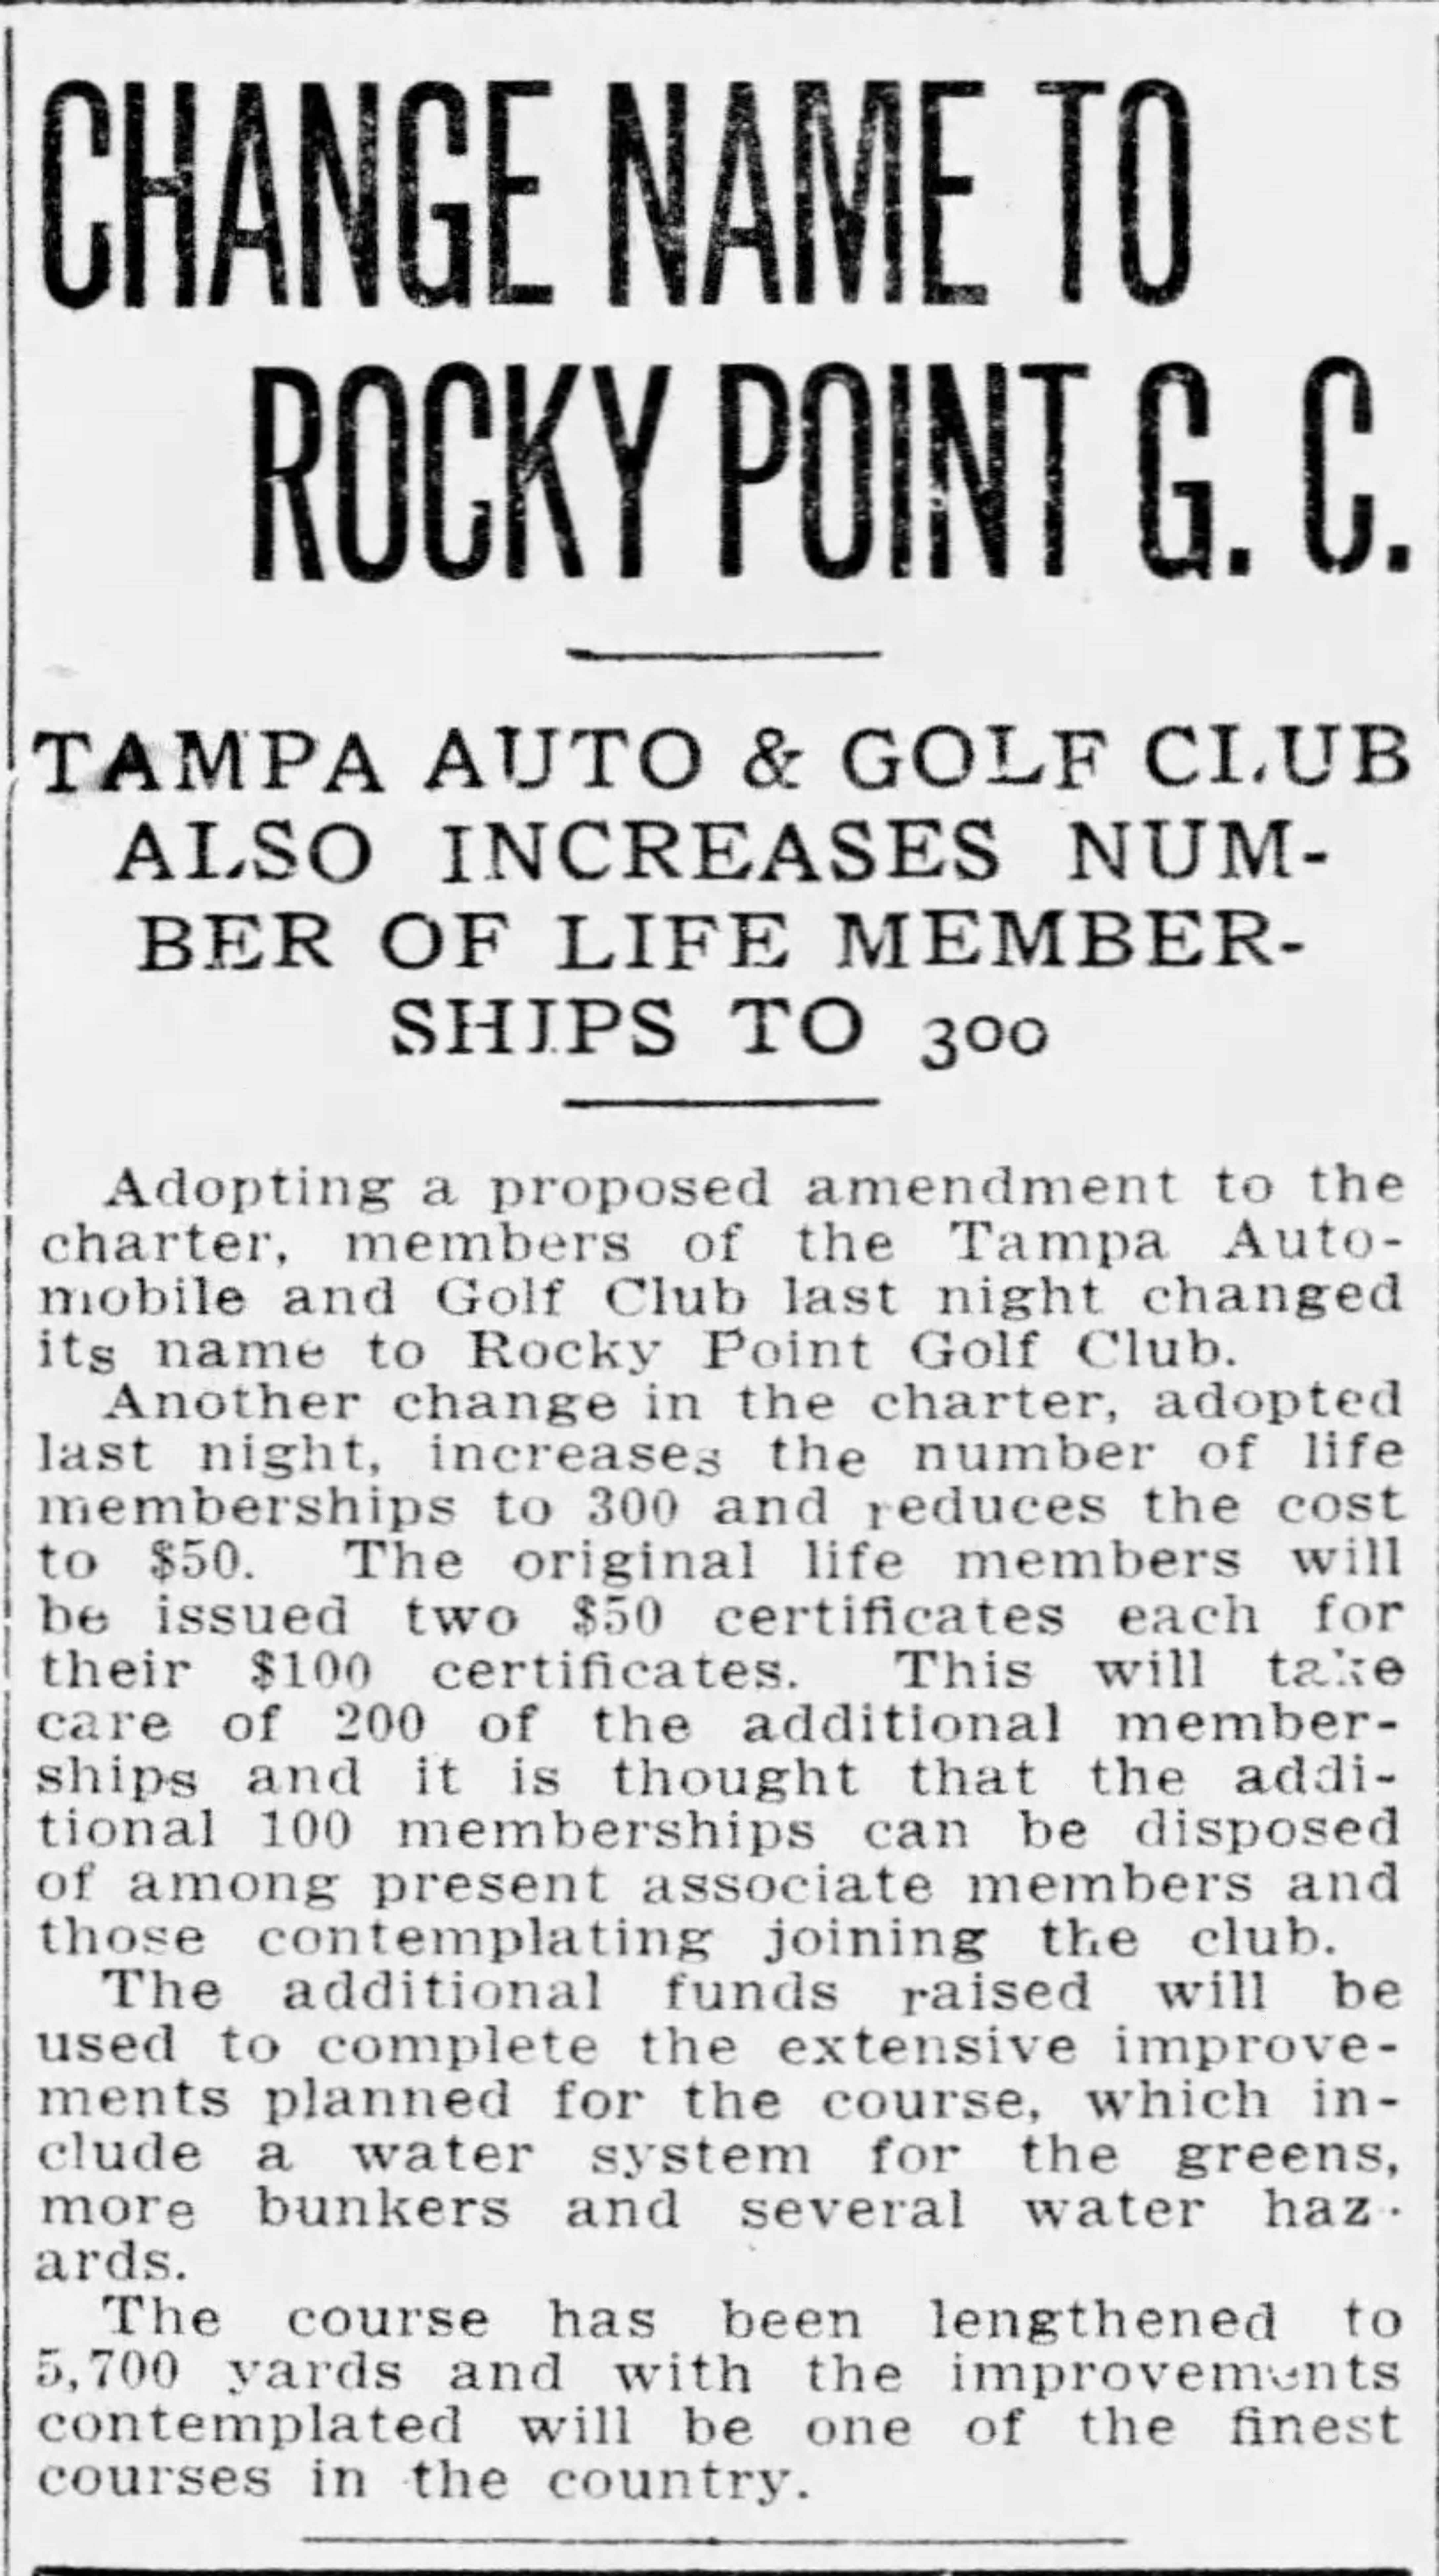 Change name to Rocky Point G.C. - May 31, 1917 Tampa Tribune